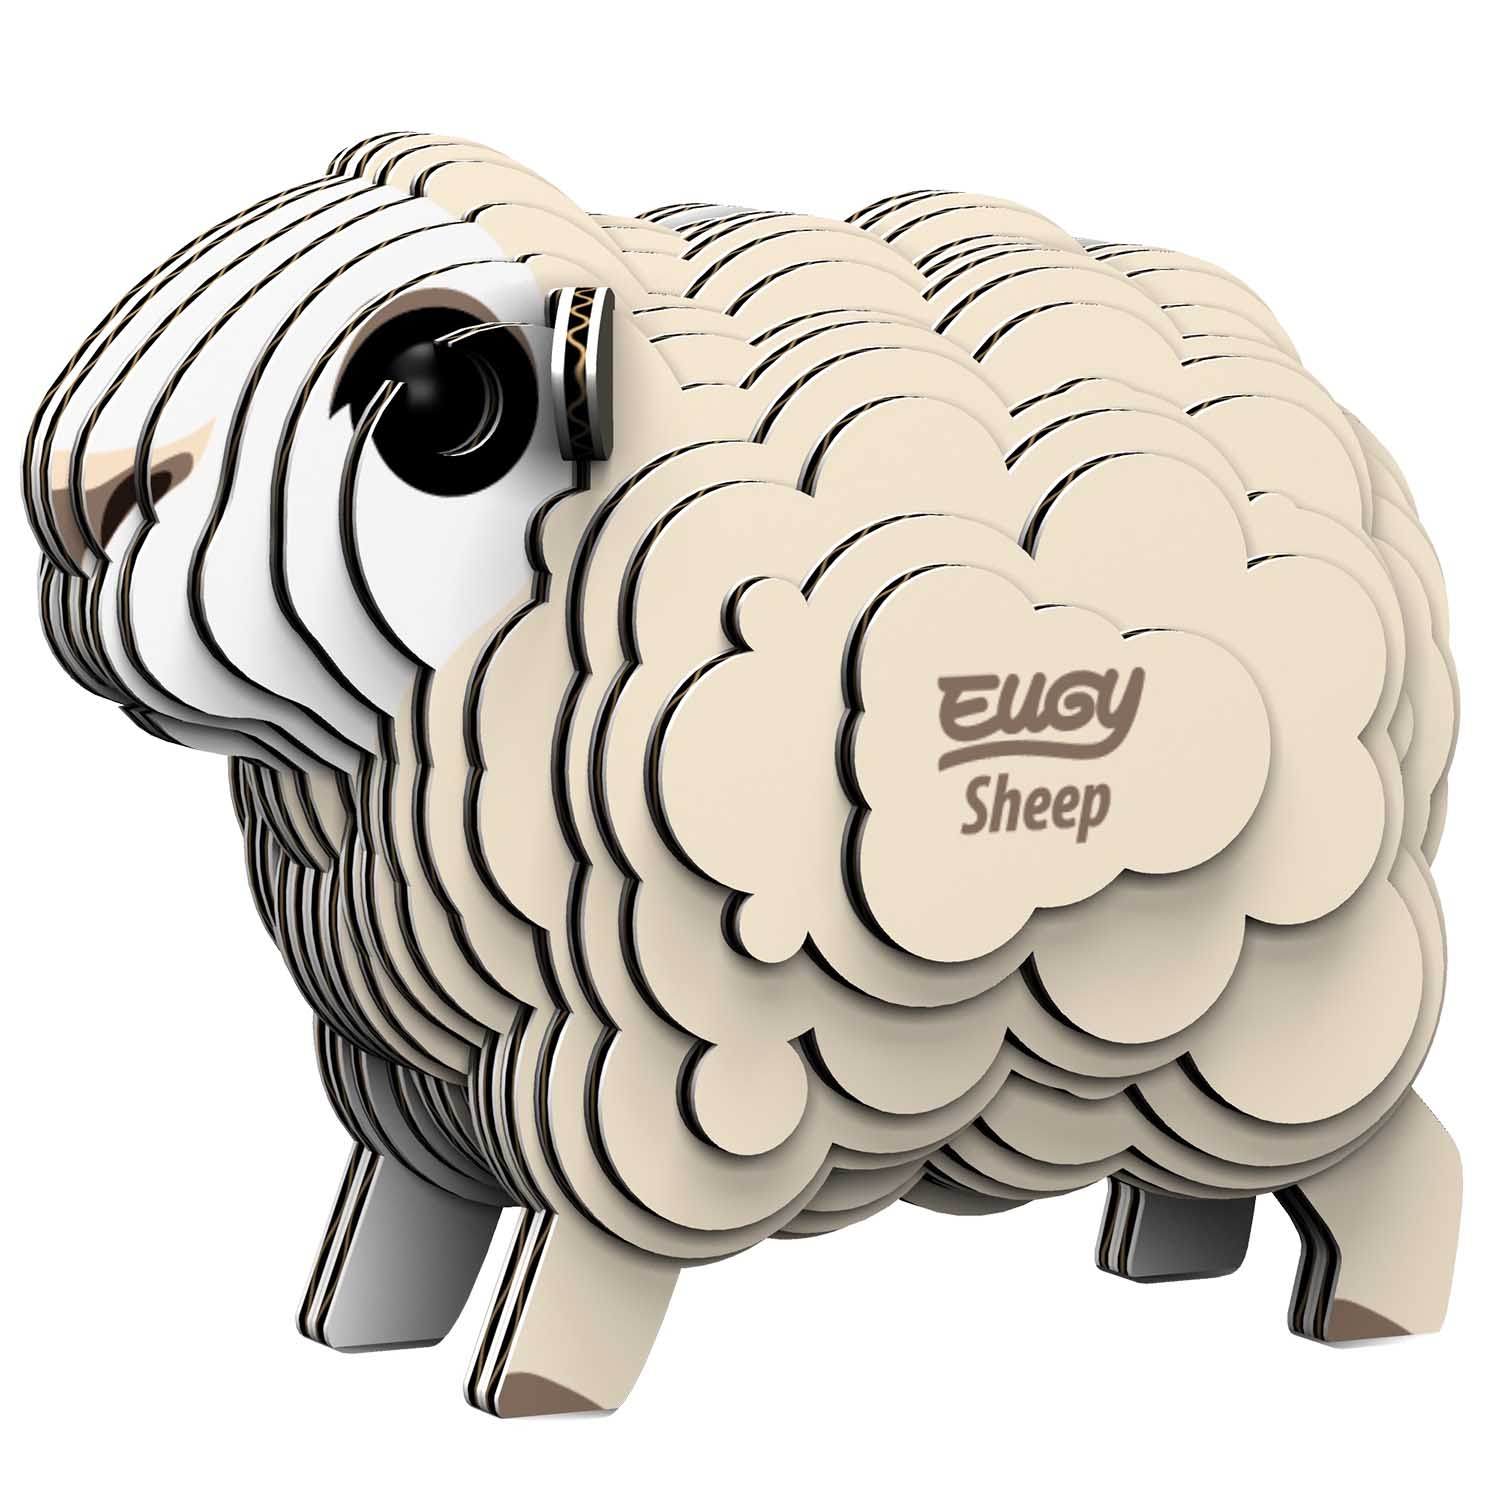 Sheep Eugy Animals 3D Puzzle